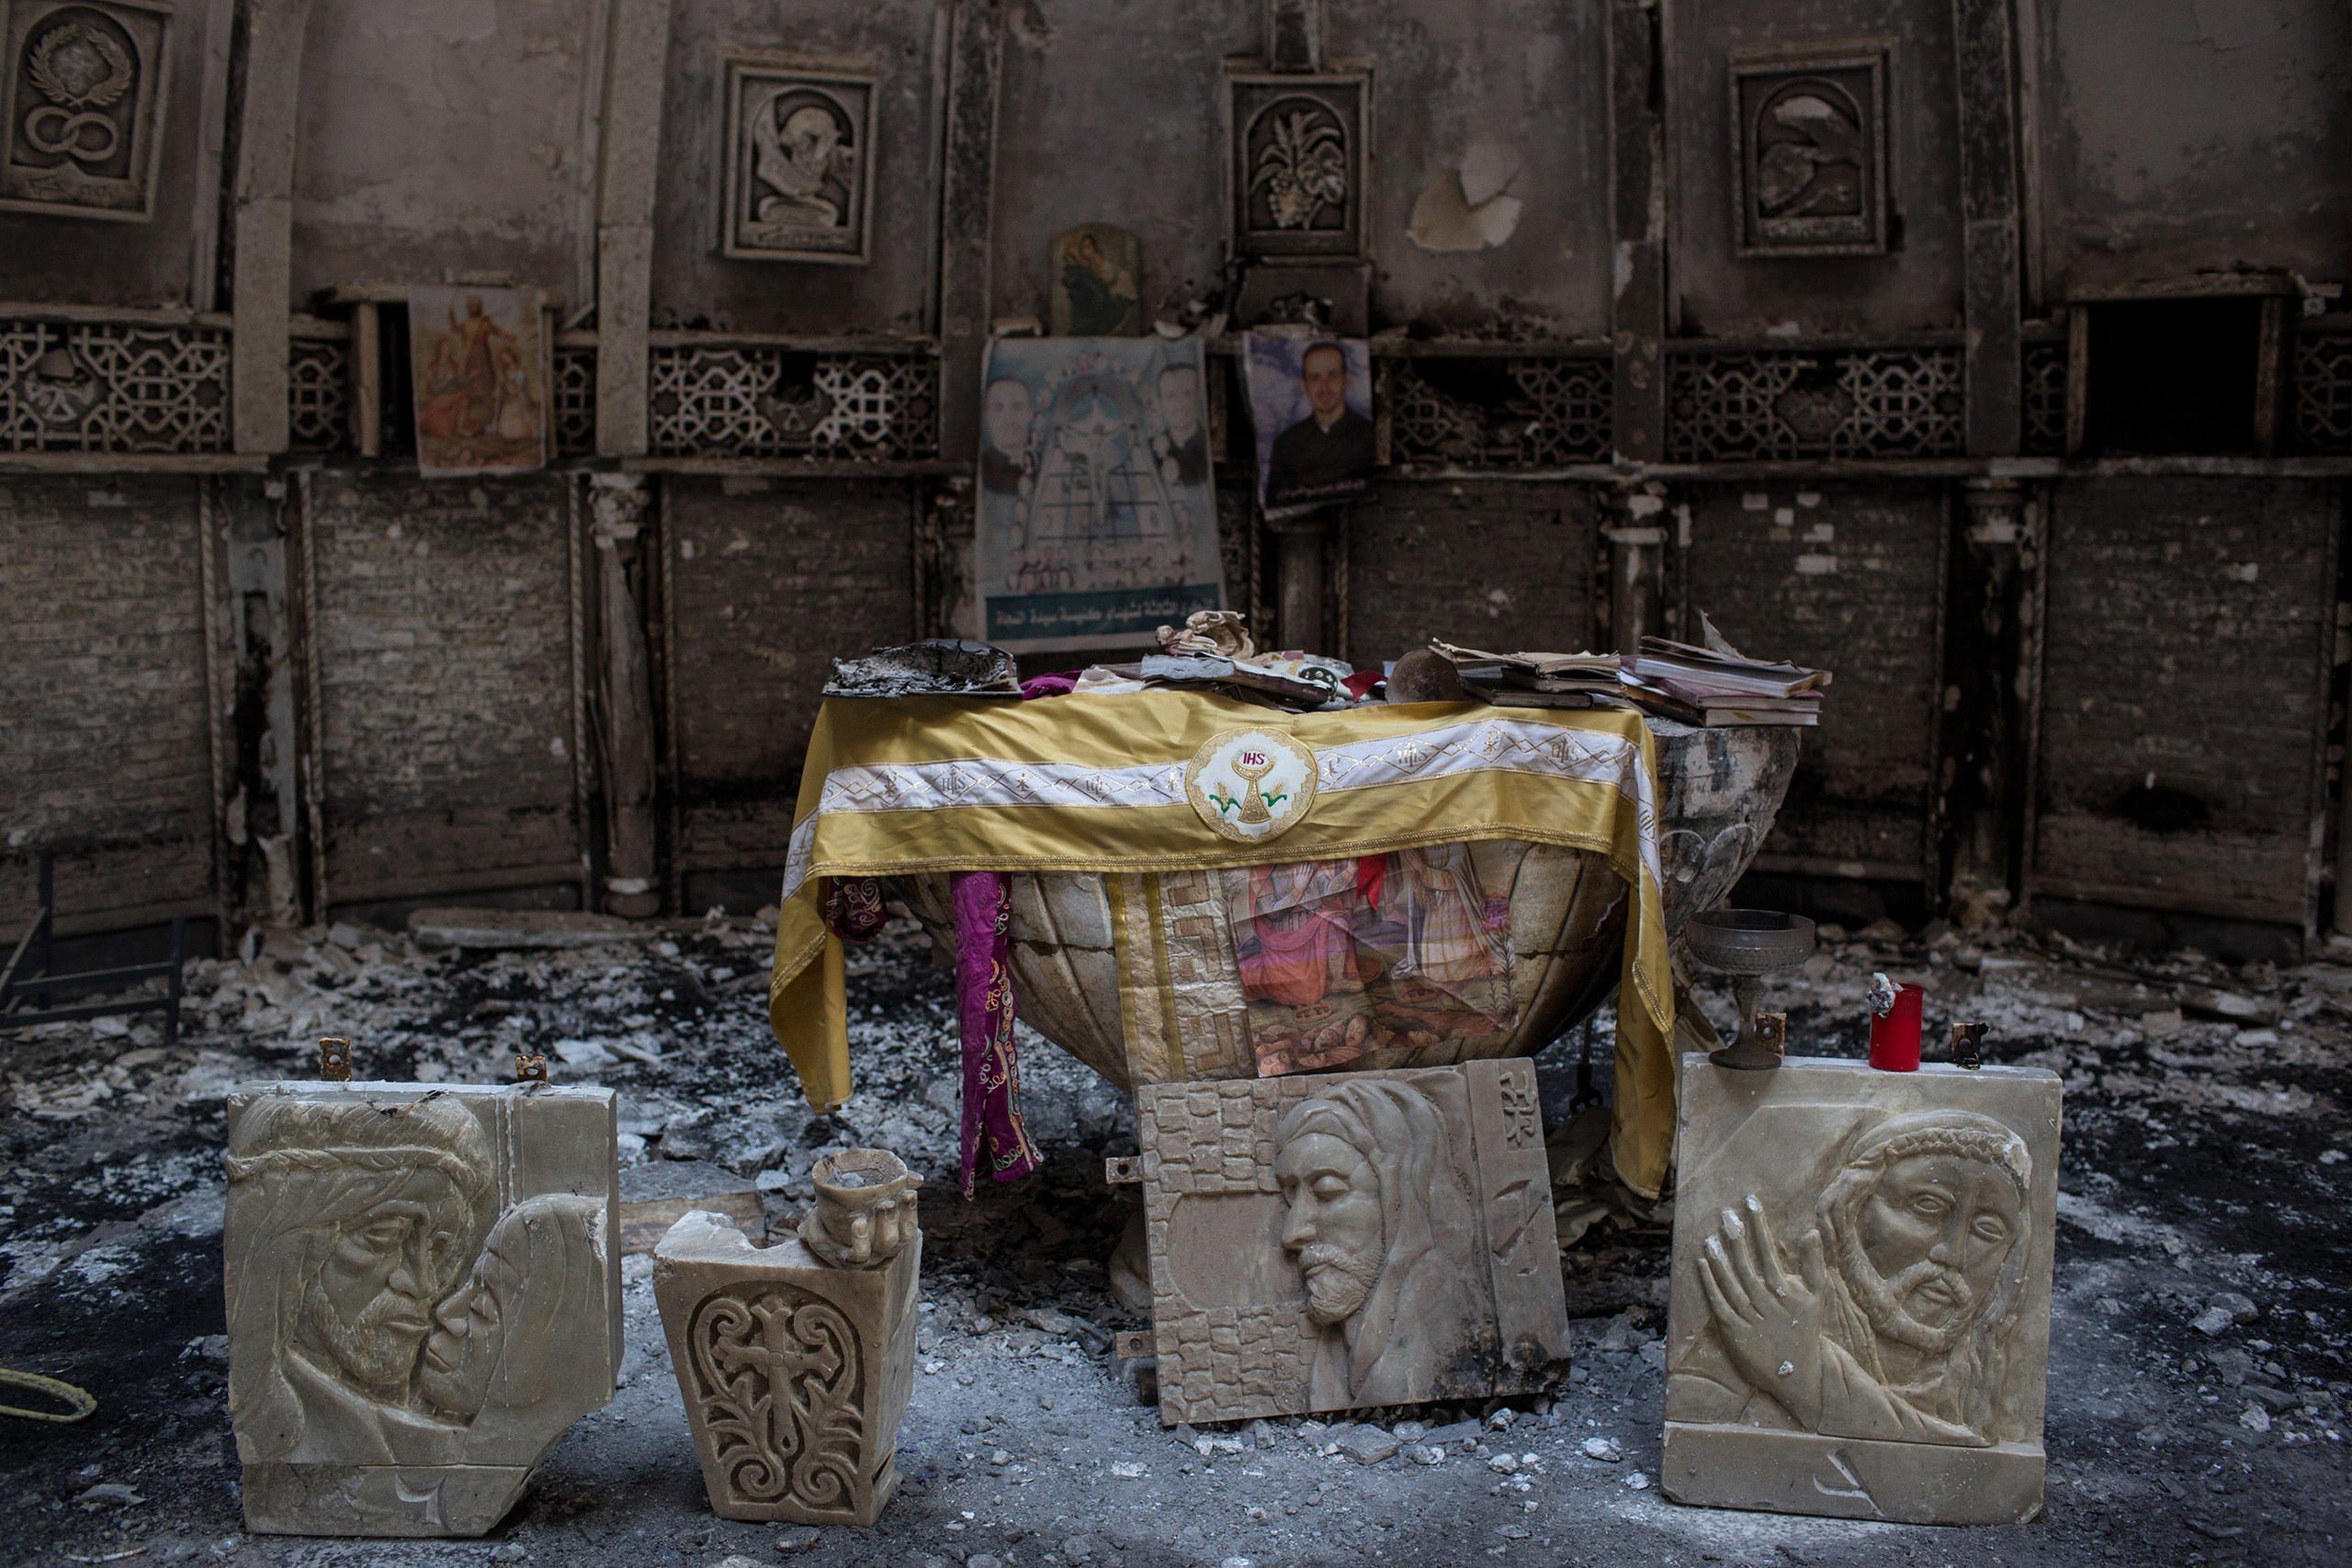 Salvaged books and other items are placed around the altar of a church, burned and destroyed by ISIS during the group's occupation of the predominantly Christian town of Qaraqosh, Iraq, on Dec. 27, 2016.